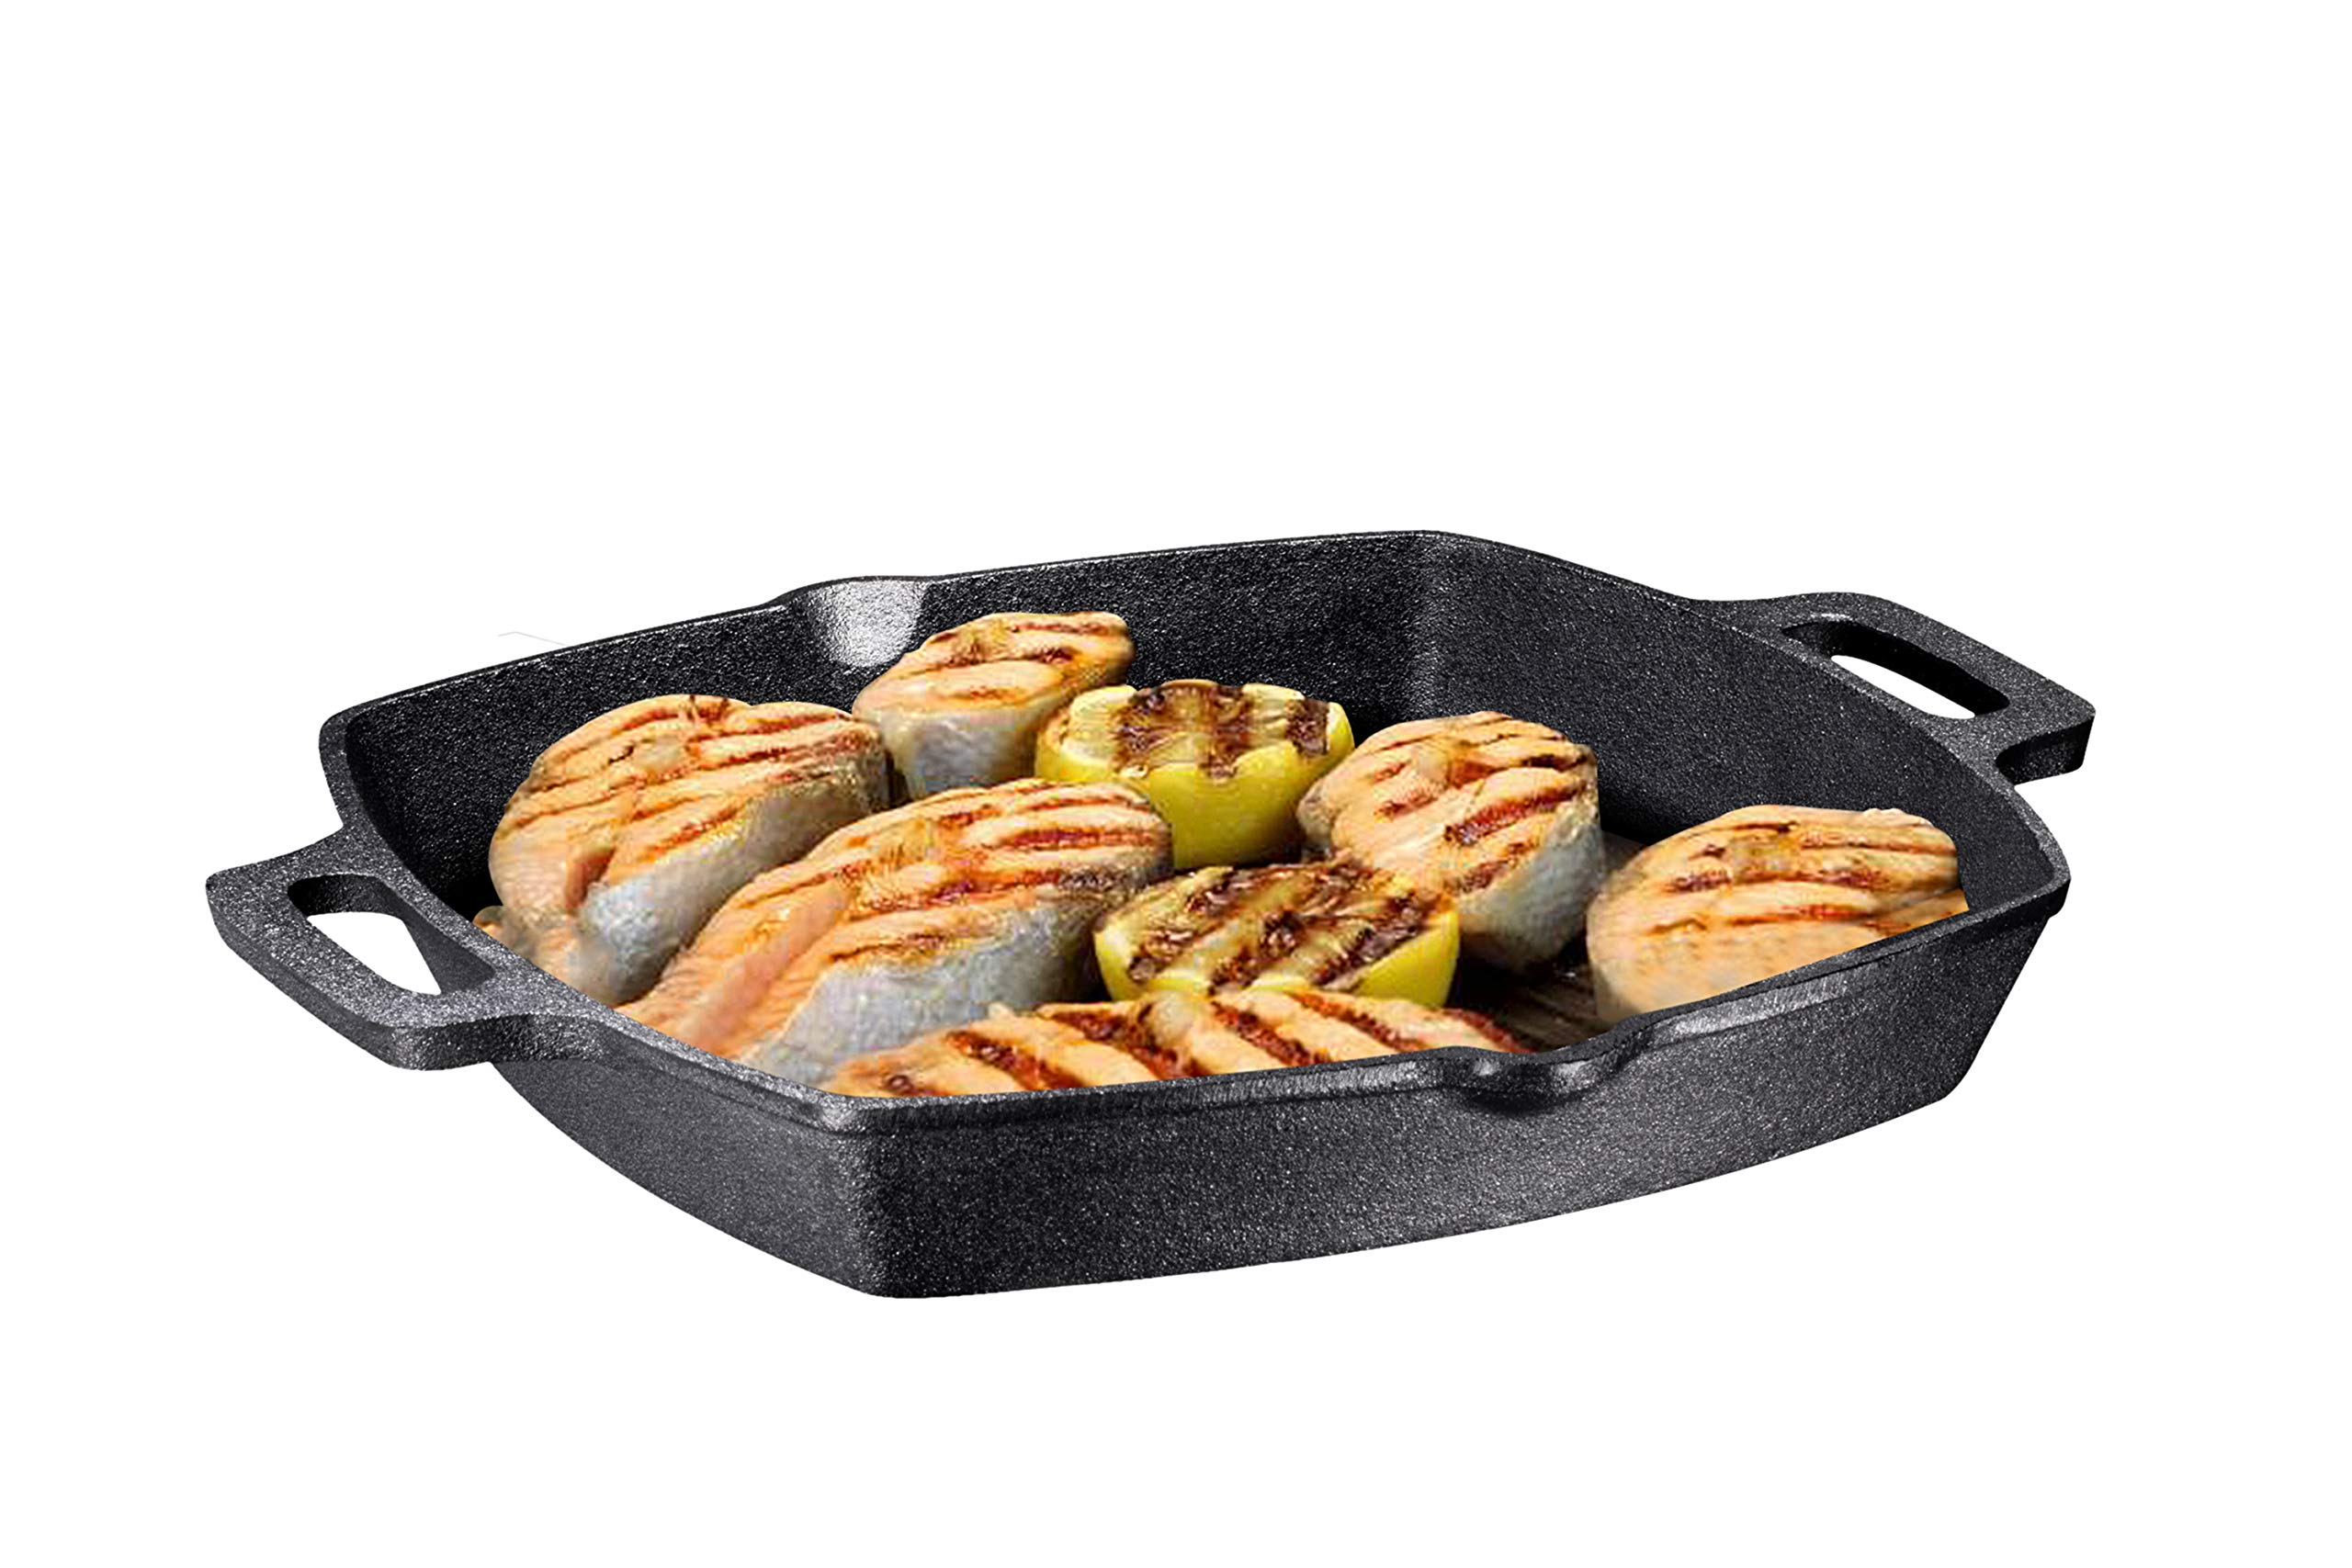 13 Inch Square Cast Iron Grill Pan Steak Pan Pre-seasoned Grill Pan with Easy Grease Drain Spout, with Large Loop Handles with Easy Grease Draining for Grilling Bacon, Steak, and Meats. by Bruntmor